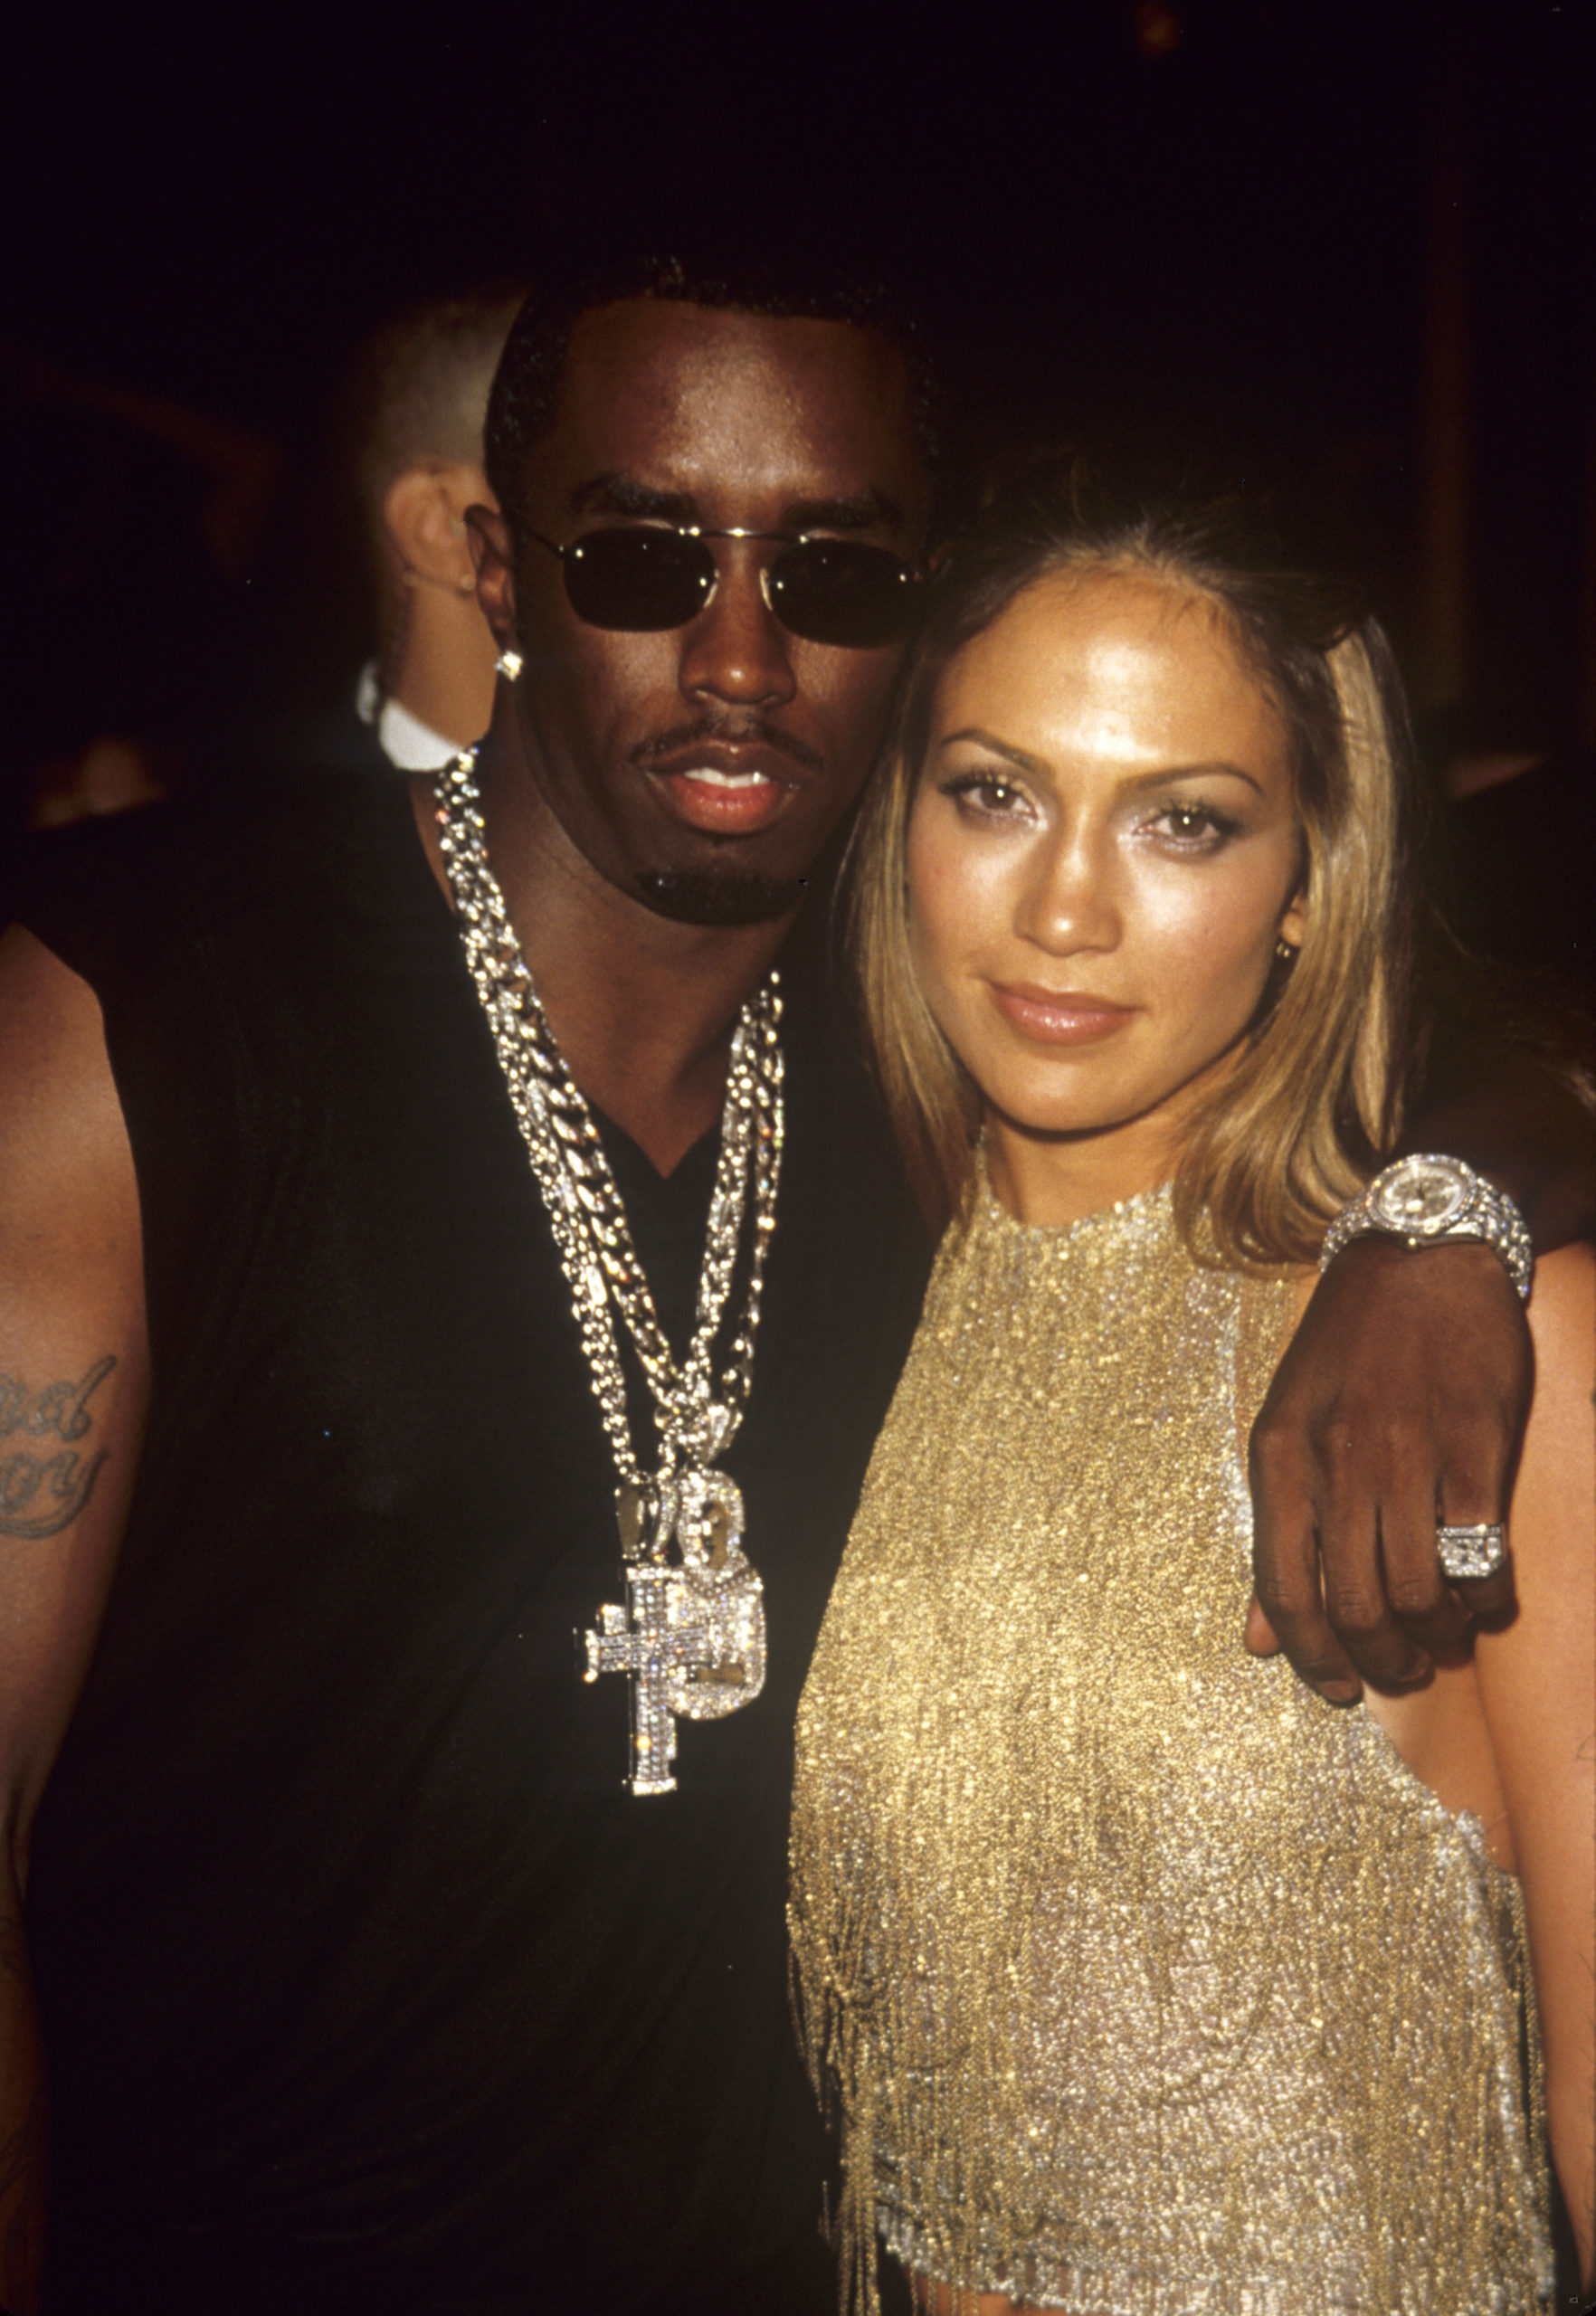 Jennifer Lopez e Diddy nel 2000 (foto Getty Images)